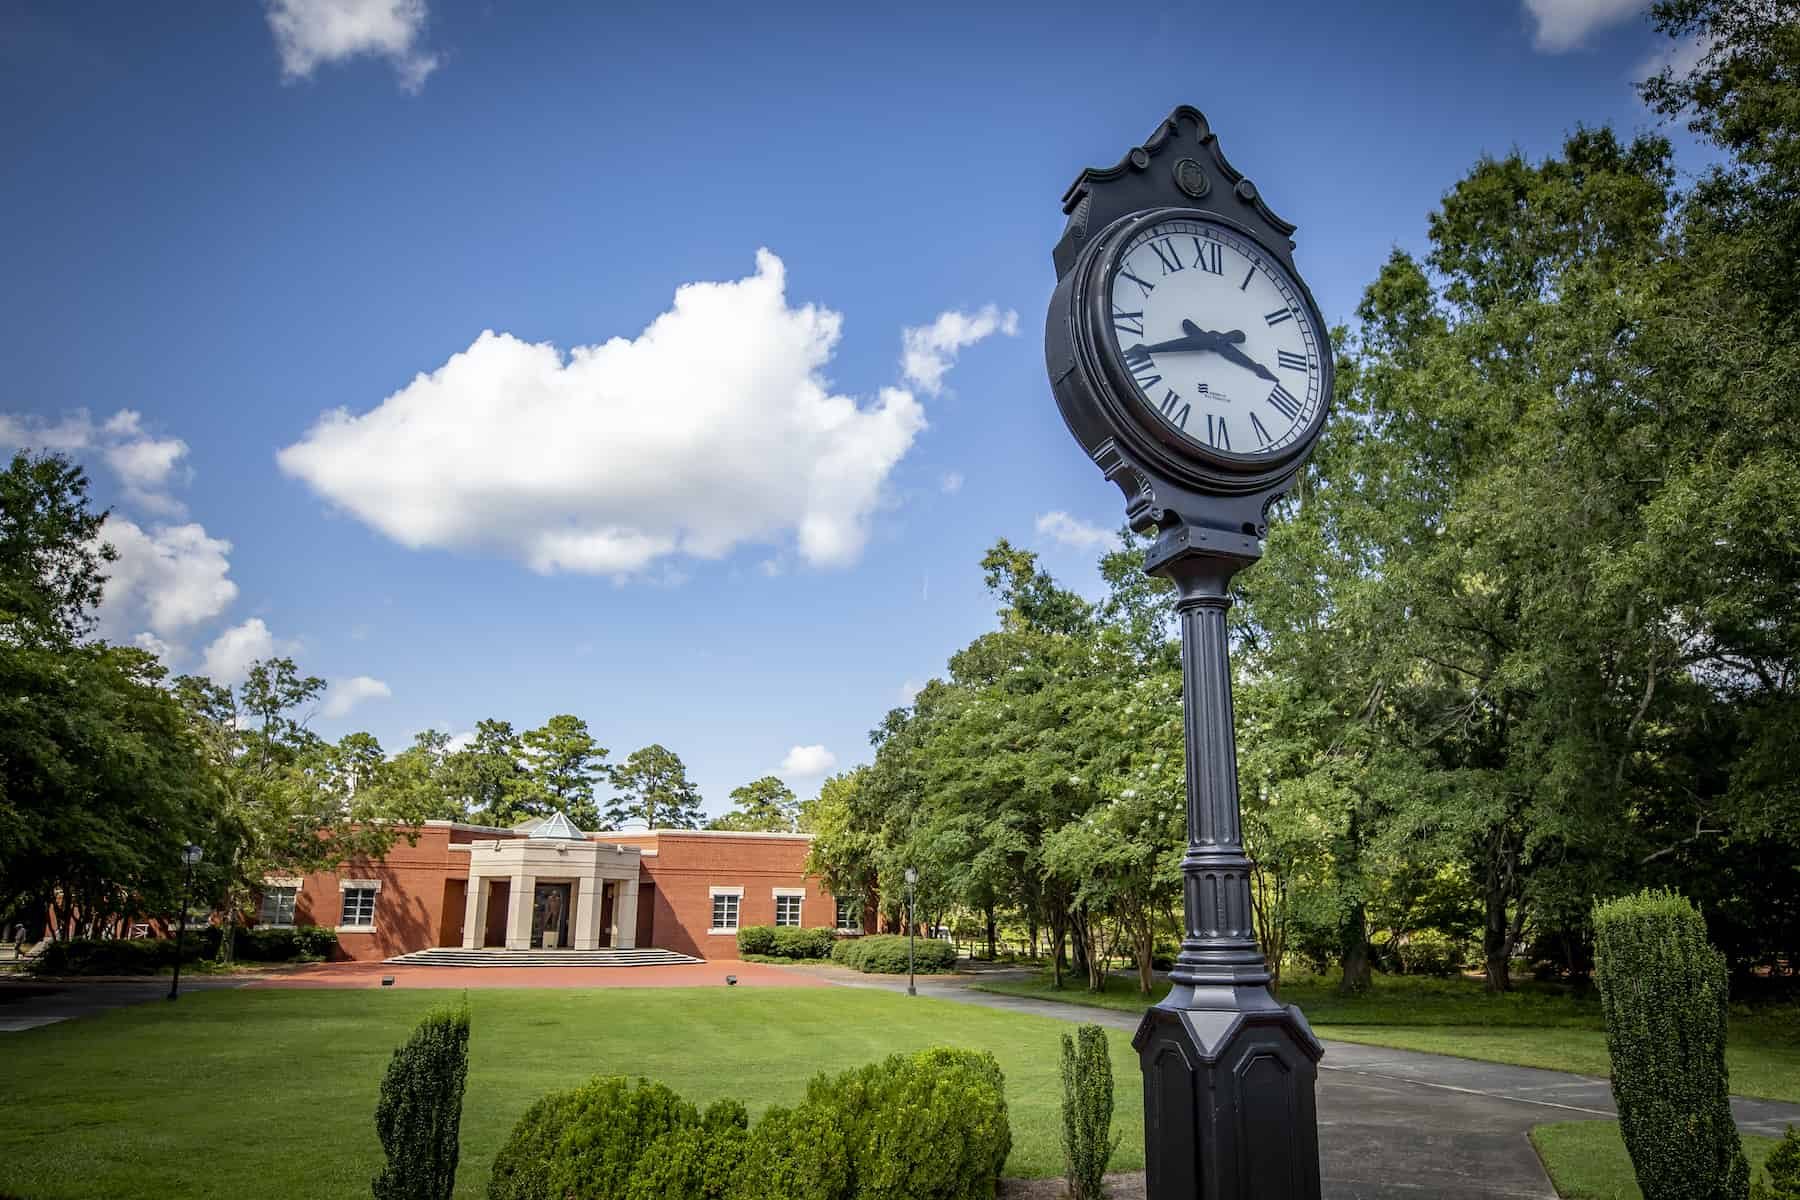 The clock in front of Stokes Administration